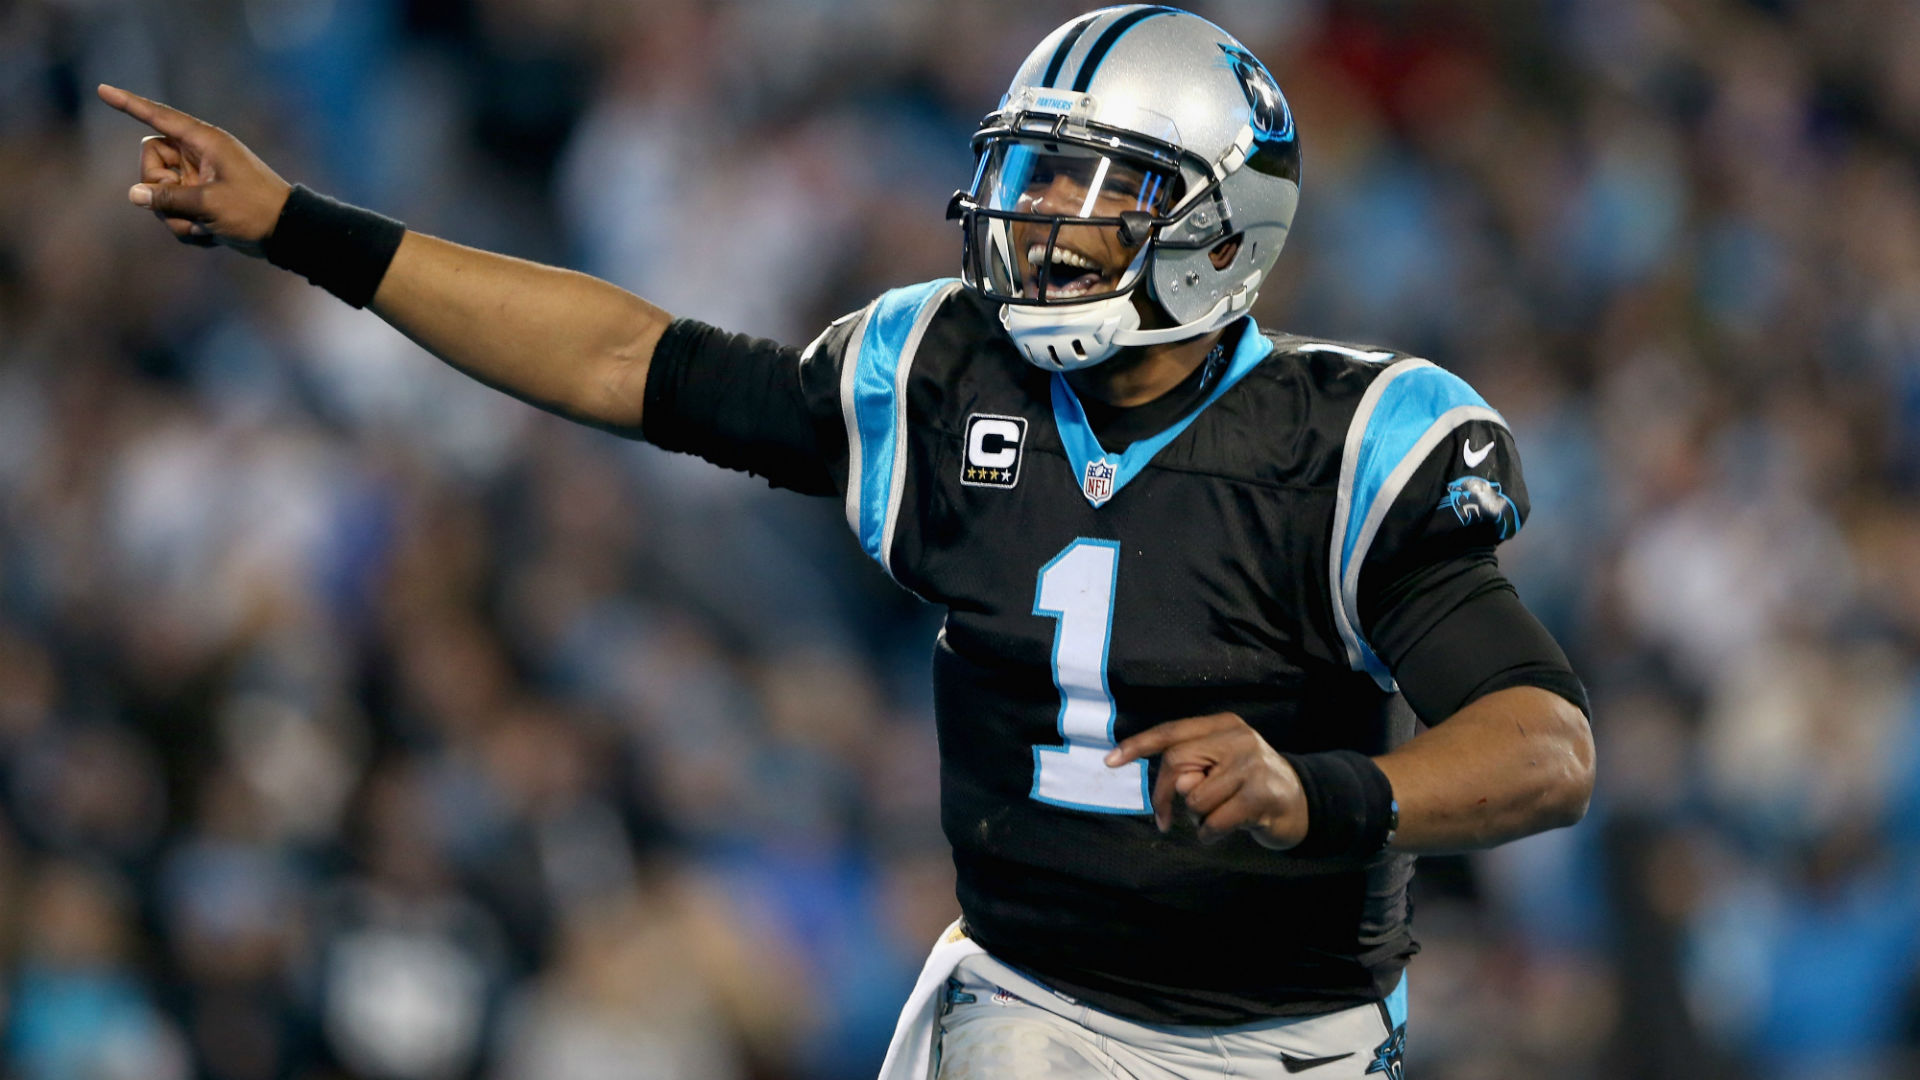 Panthers Cam Newton voted NFL s top player by peers